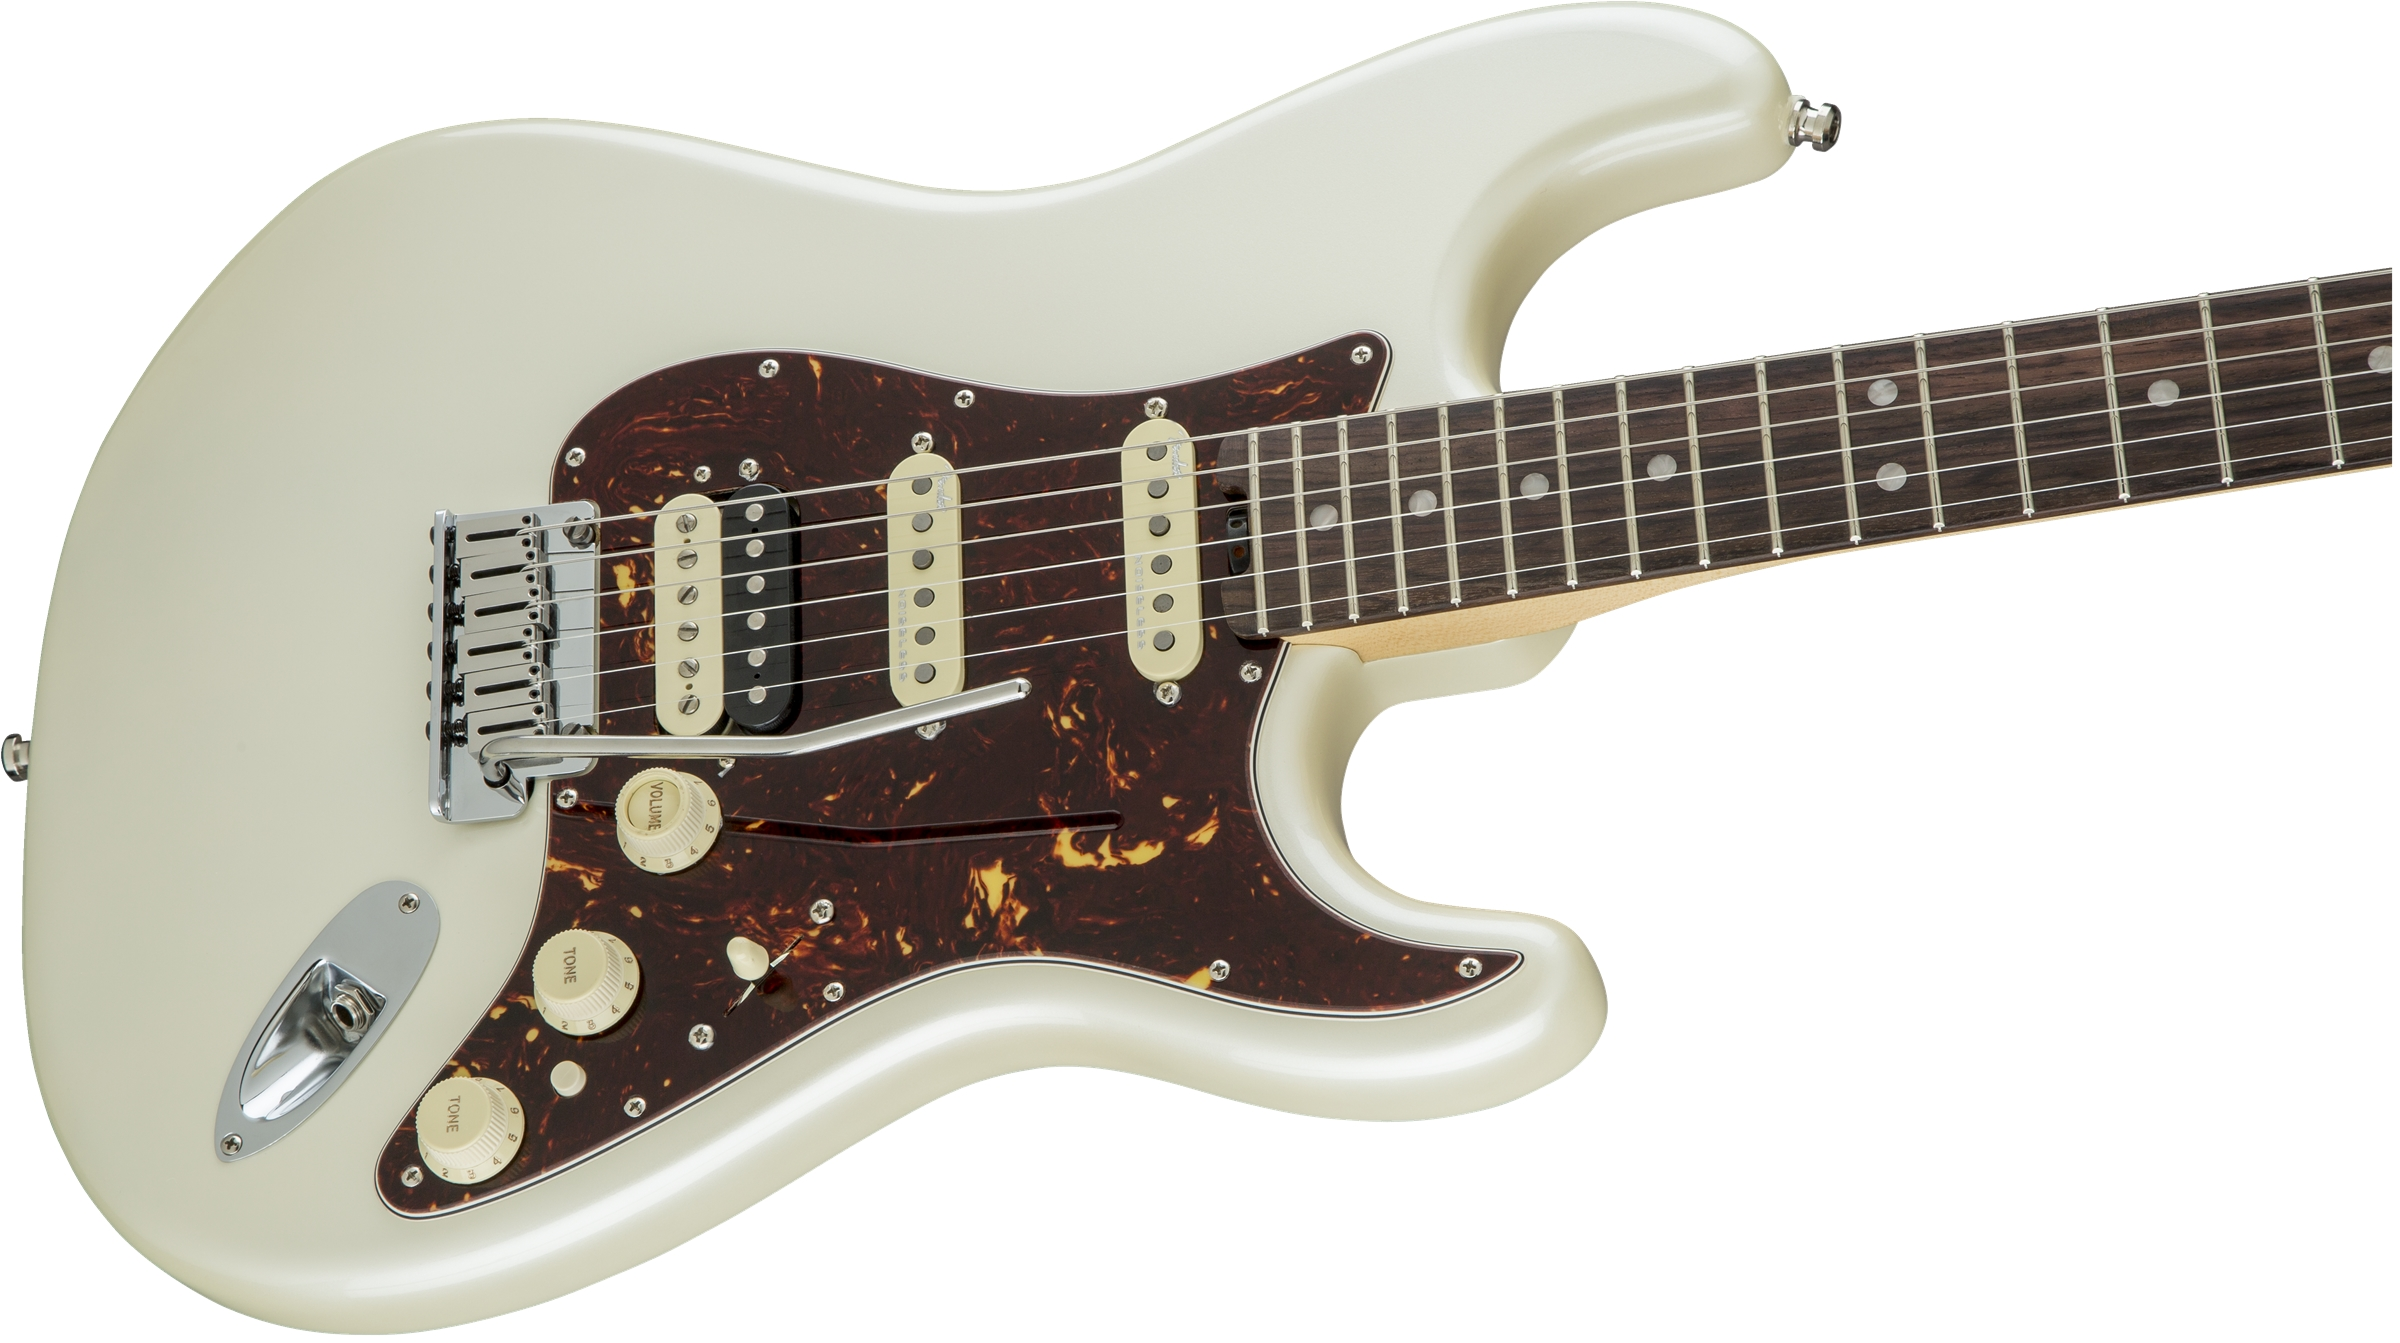 Fender American Elite Stratocaster® HSS Shawbucker Olympic Pearl Rosewood Fingerboard Electric Guitar